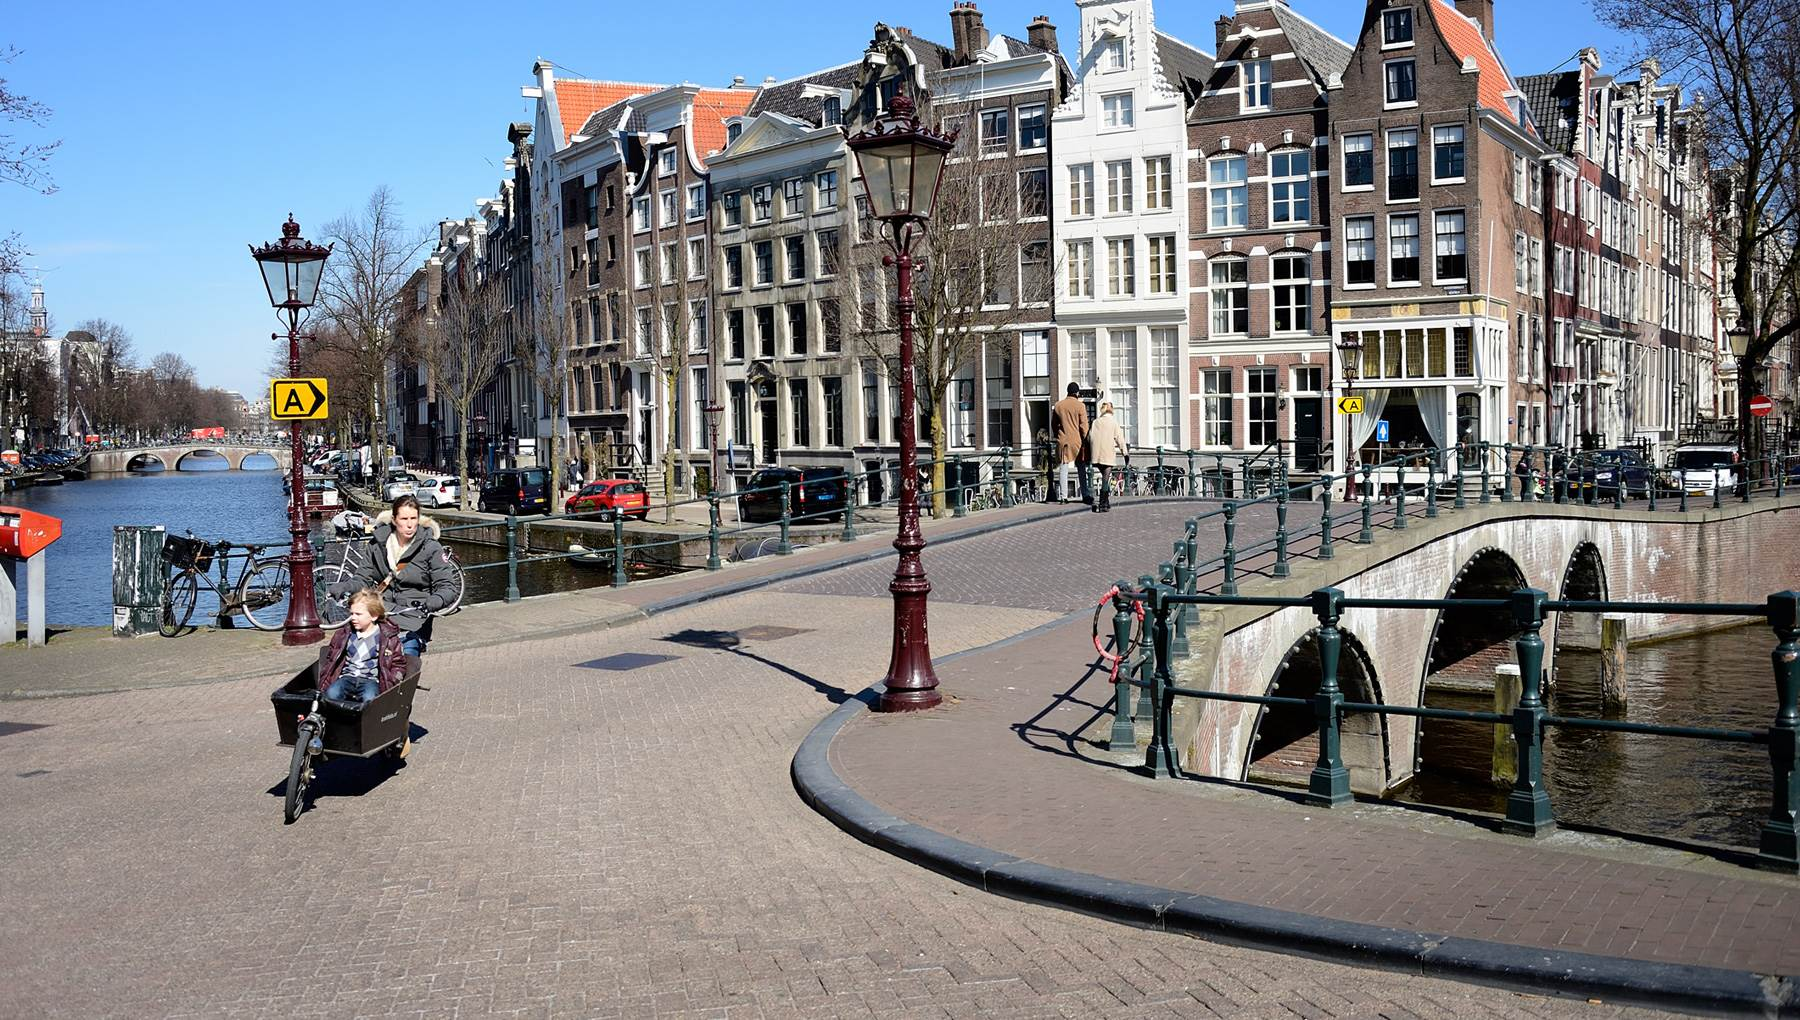 Amsterdam canal houses | I amsterdam